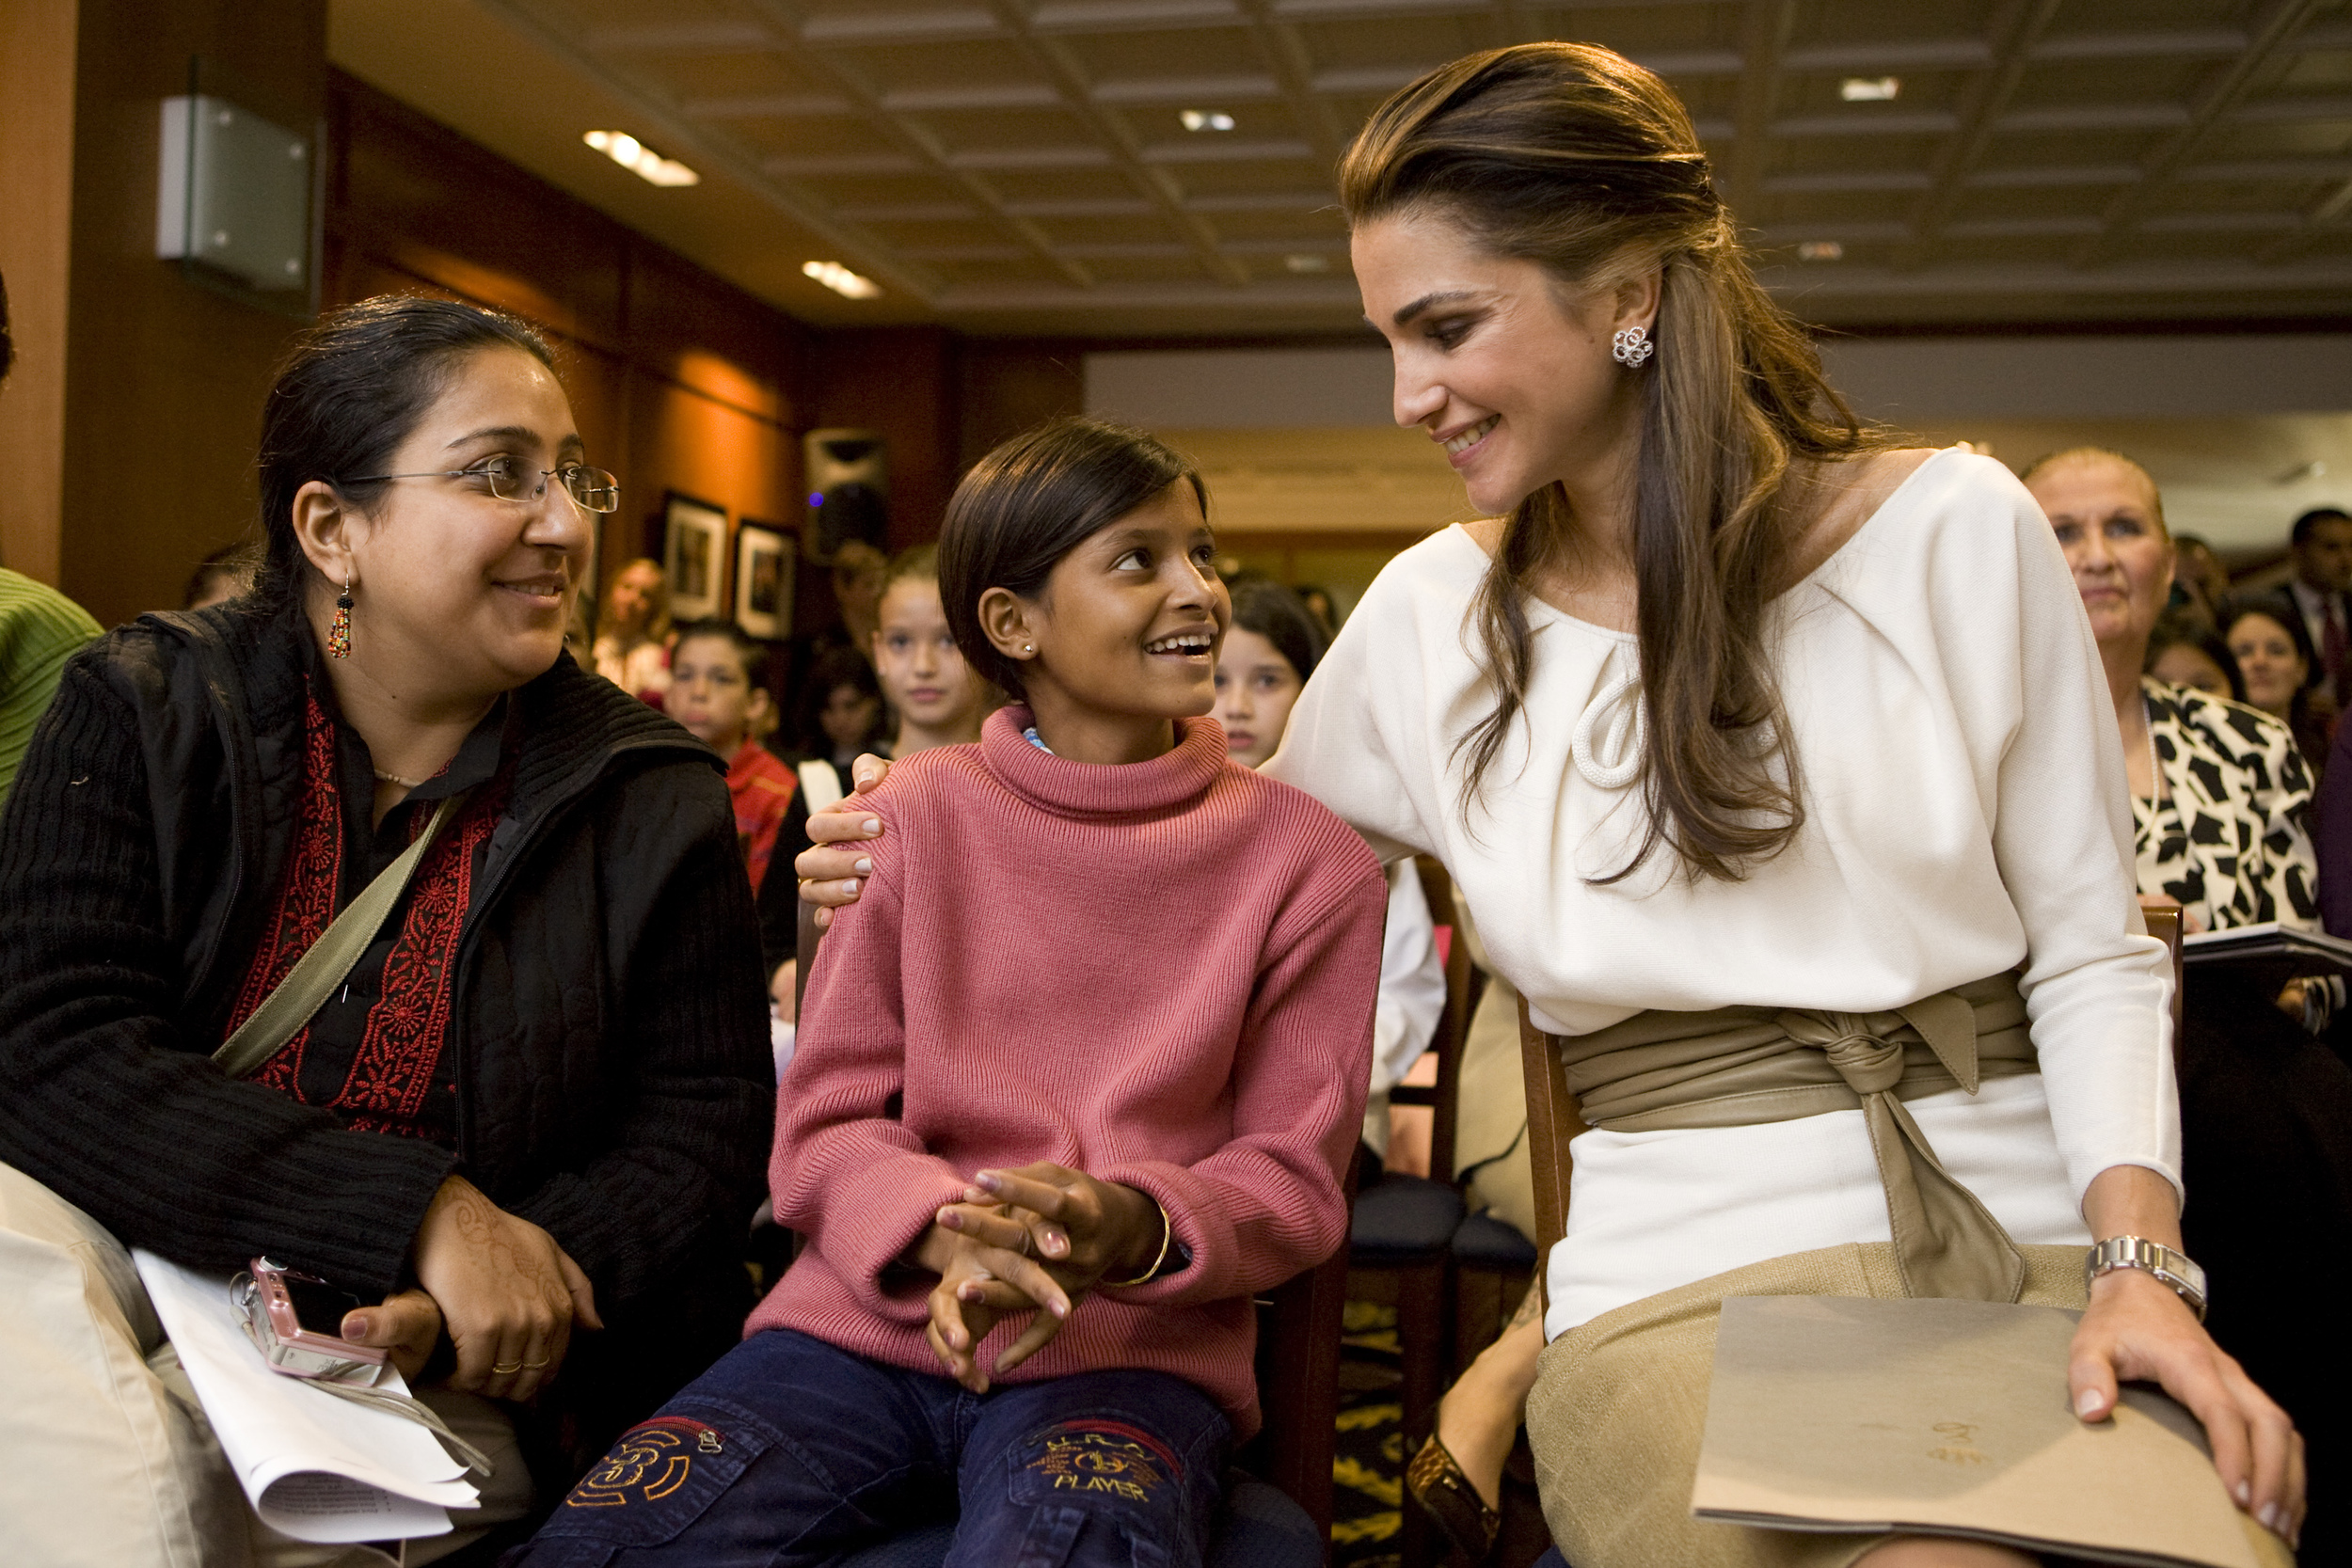 Queen Rania of Jordan with former laborer from India and now childhood education advocate in an event by the Global Campaign for Education calling for quality basic education for all children.